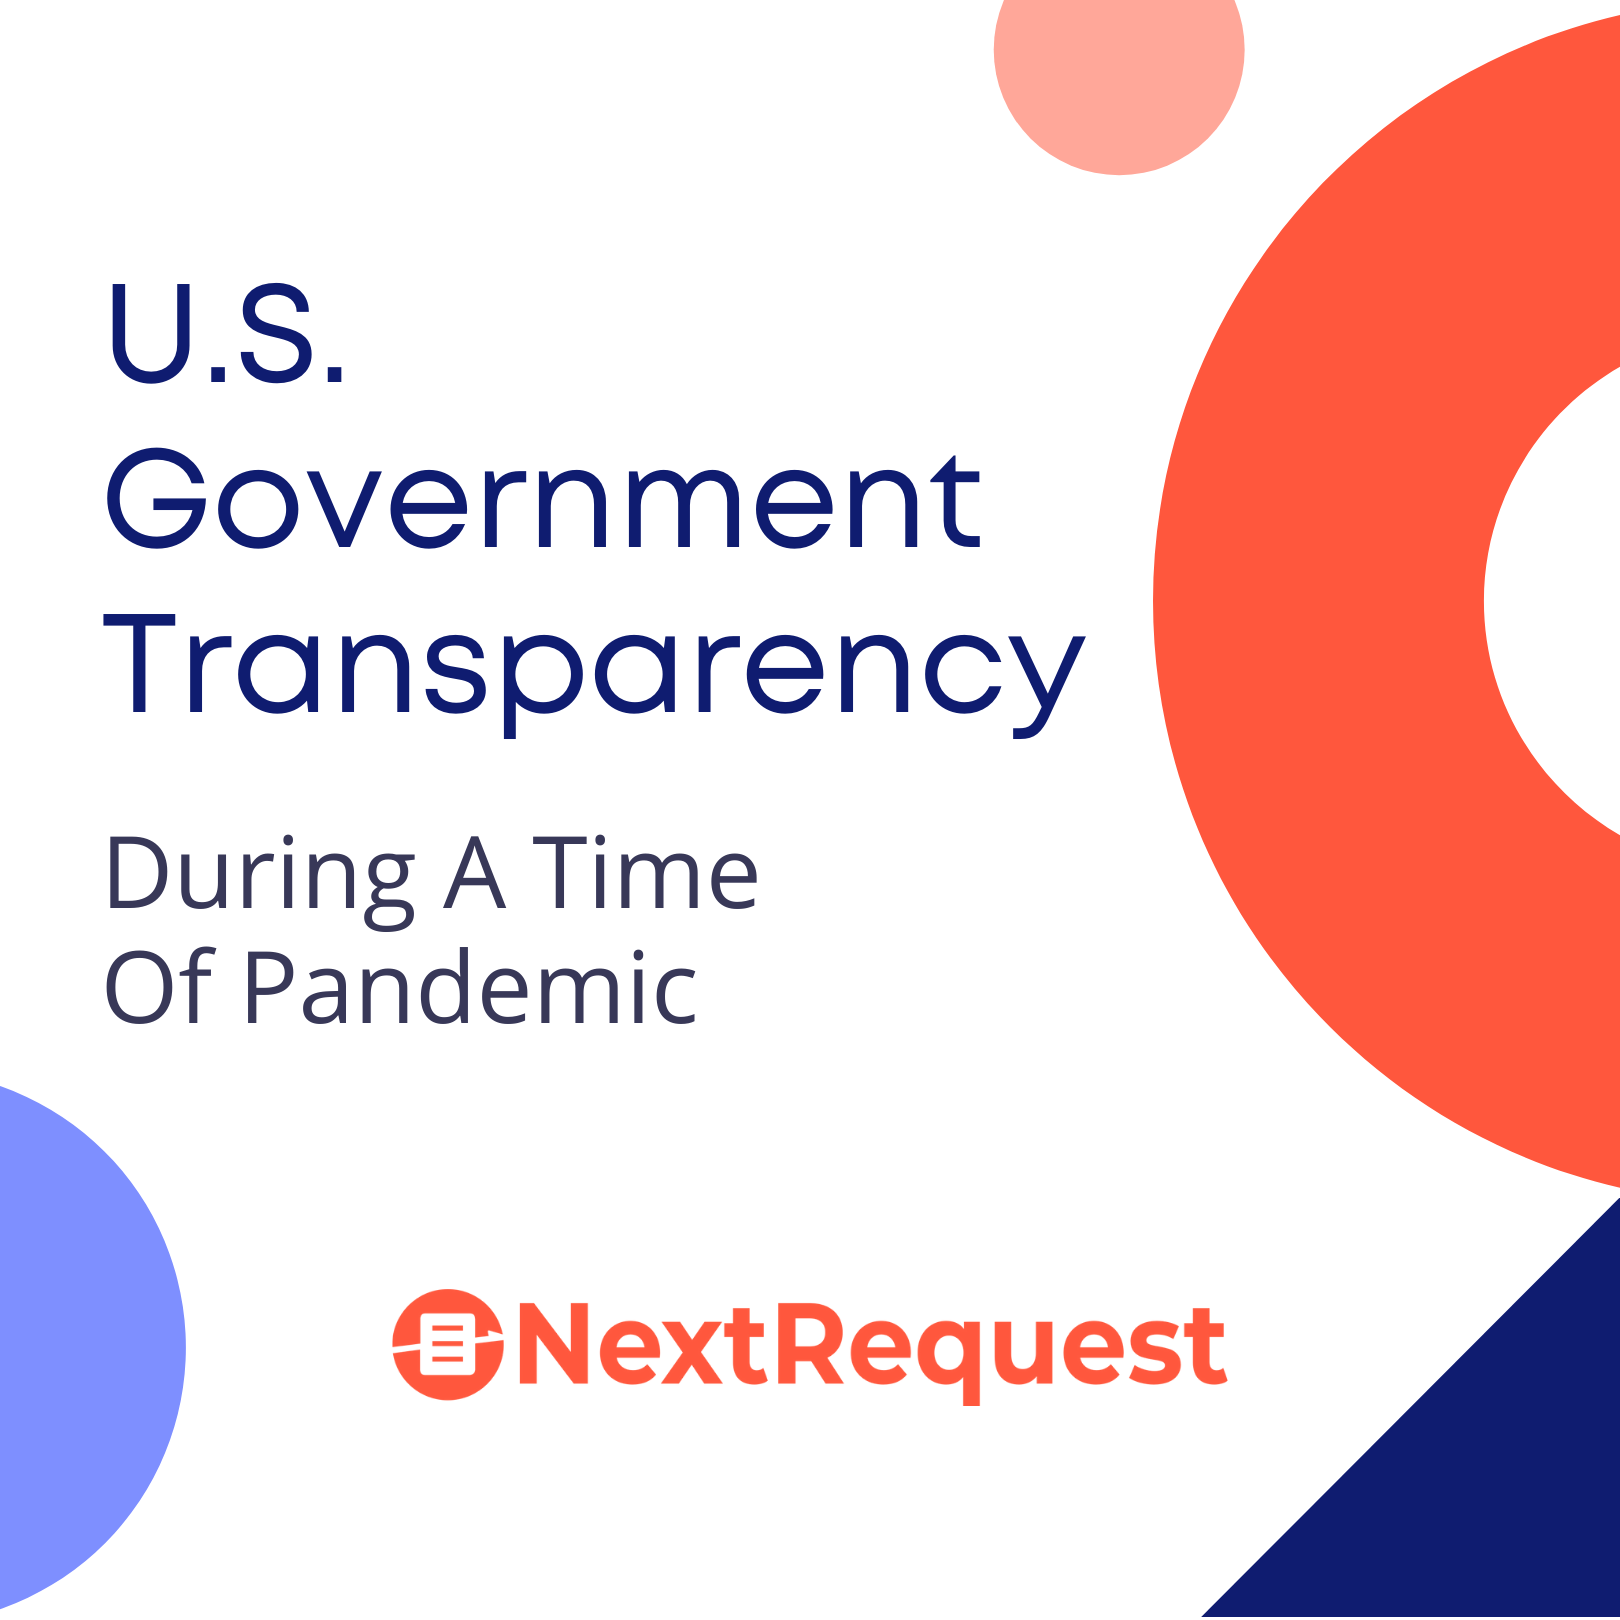 U.S. Government Transparency During A Time Of Pandemic